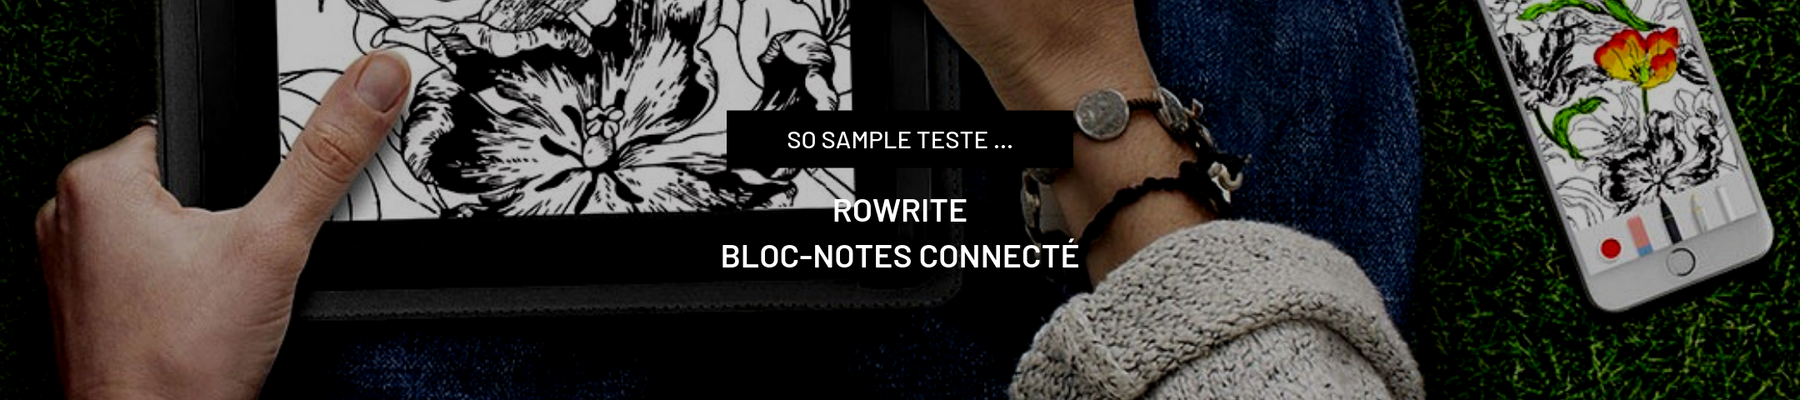 Test de RoWrite, le bloc-notes connecté